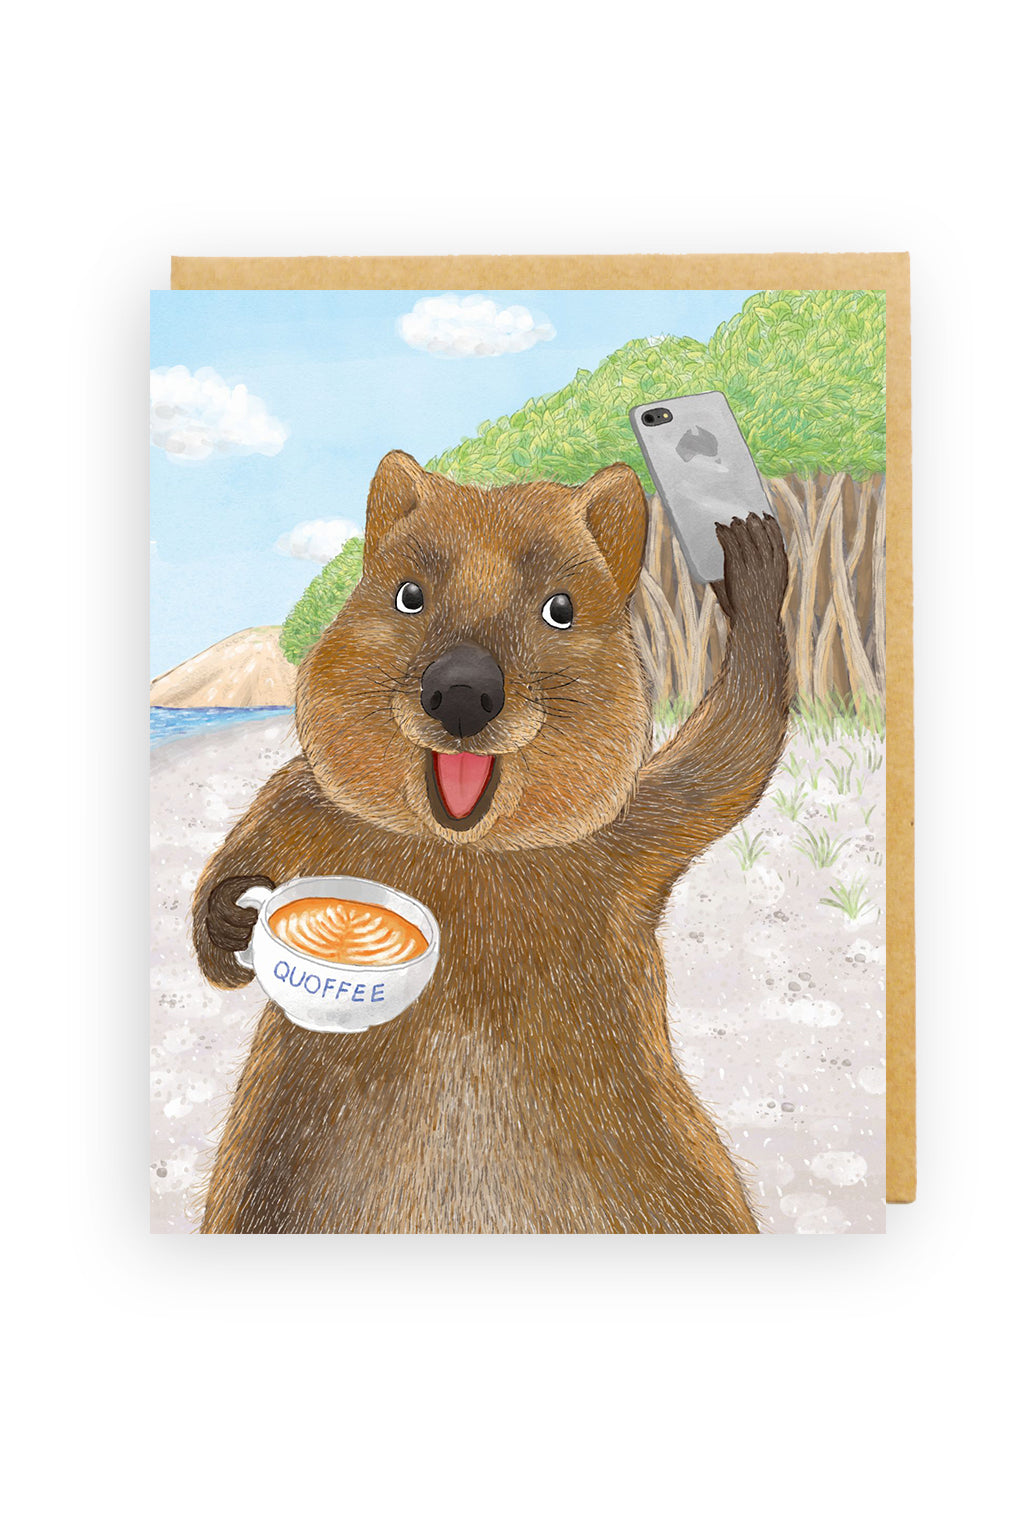 Squirrel Design Studio-Quokka Selfie - Greeting Card-Mott and Mulberry